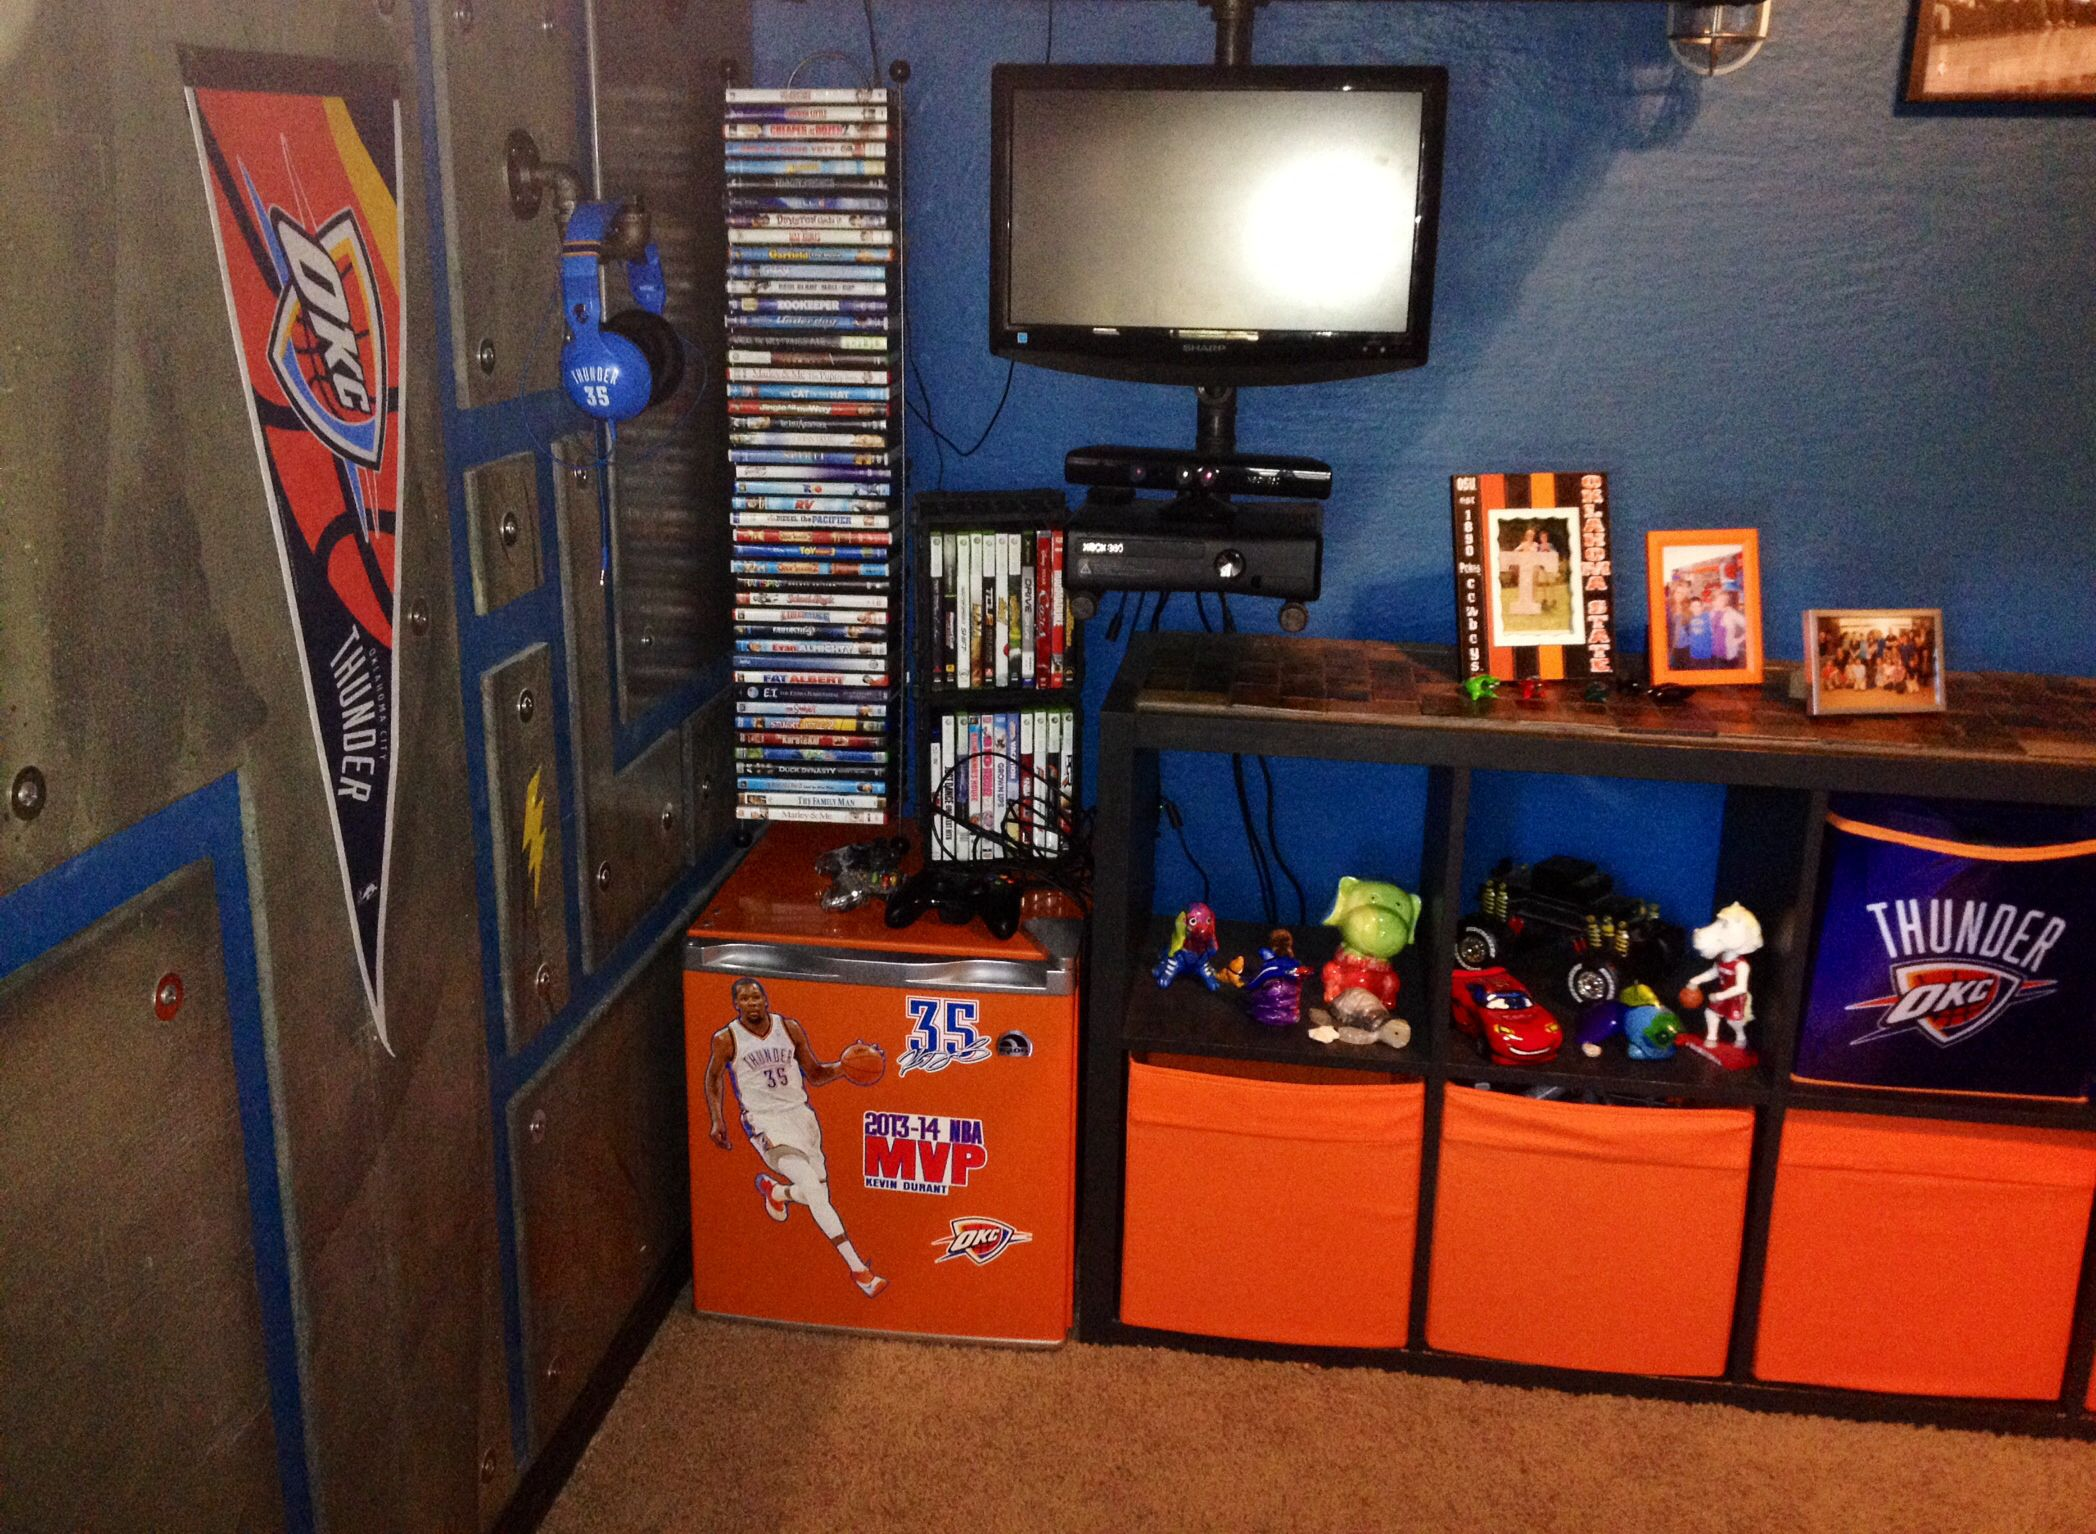 Okc thunder bedroom  Nba bedroom, Basketball bedroom, Bedroom